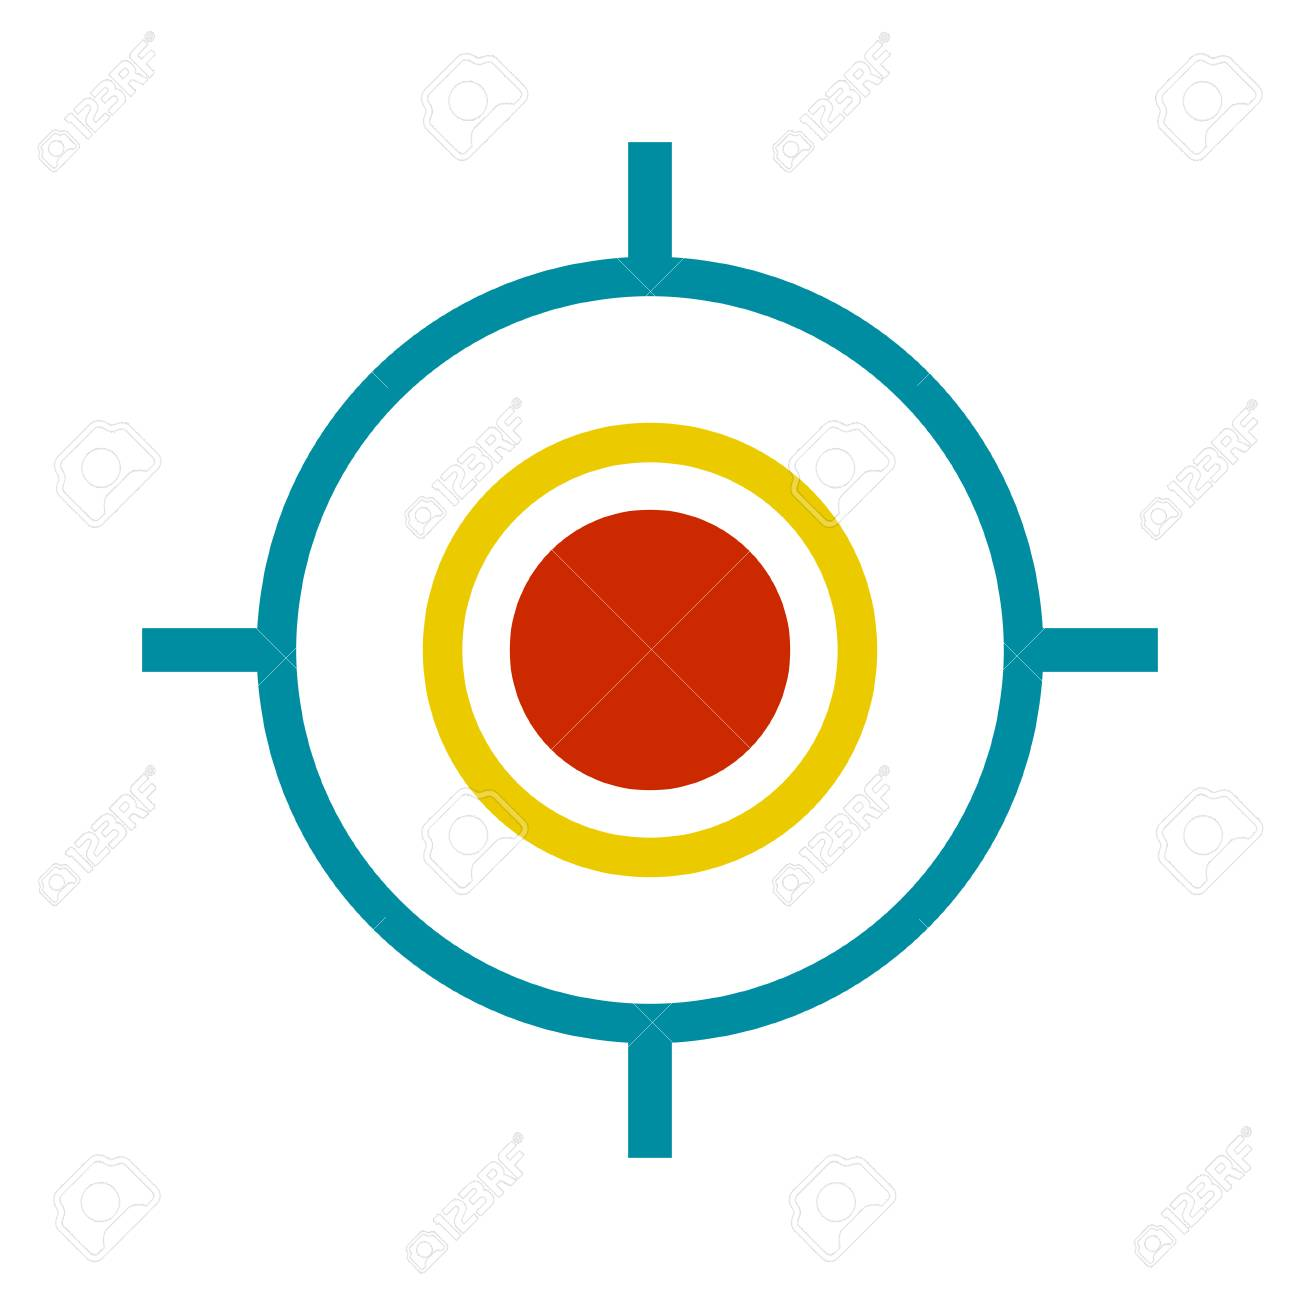 target aim icon royalty free cliparts vectors and stock illustration image 100301190 123rf com